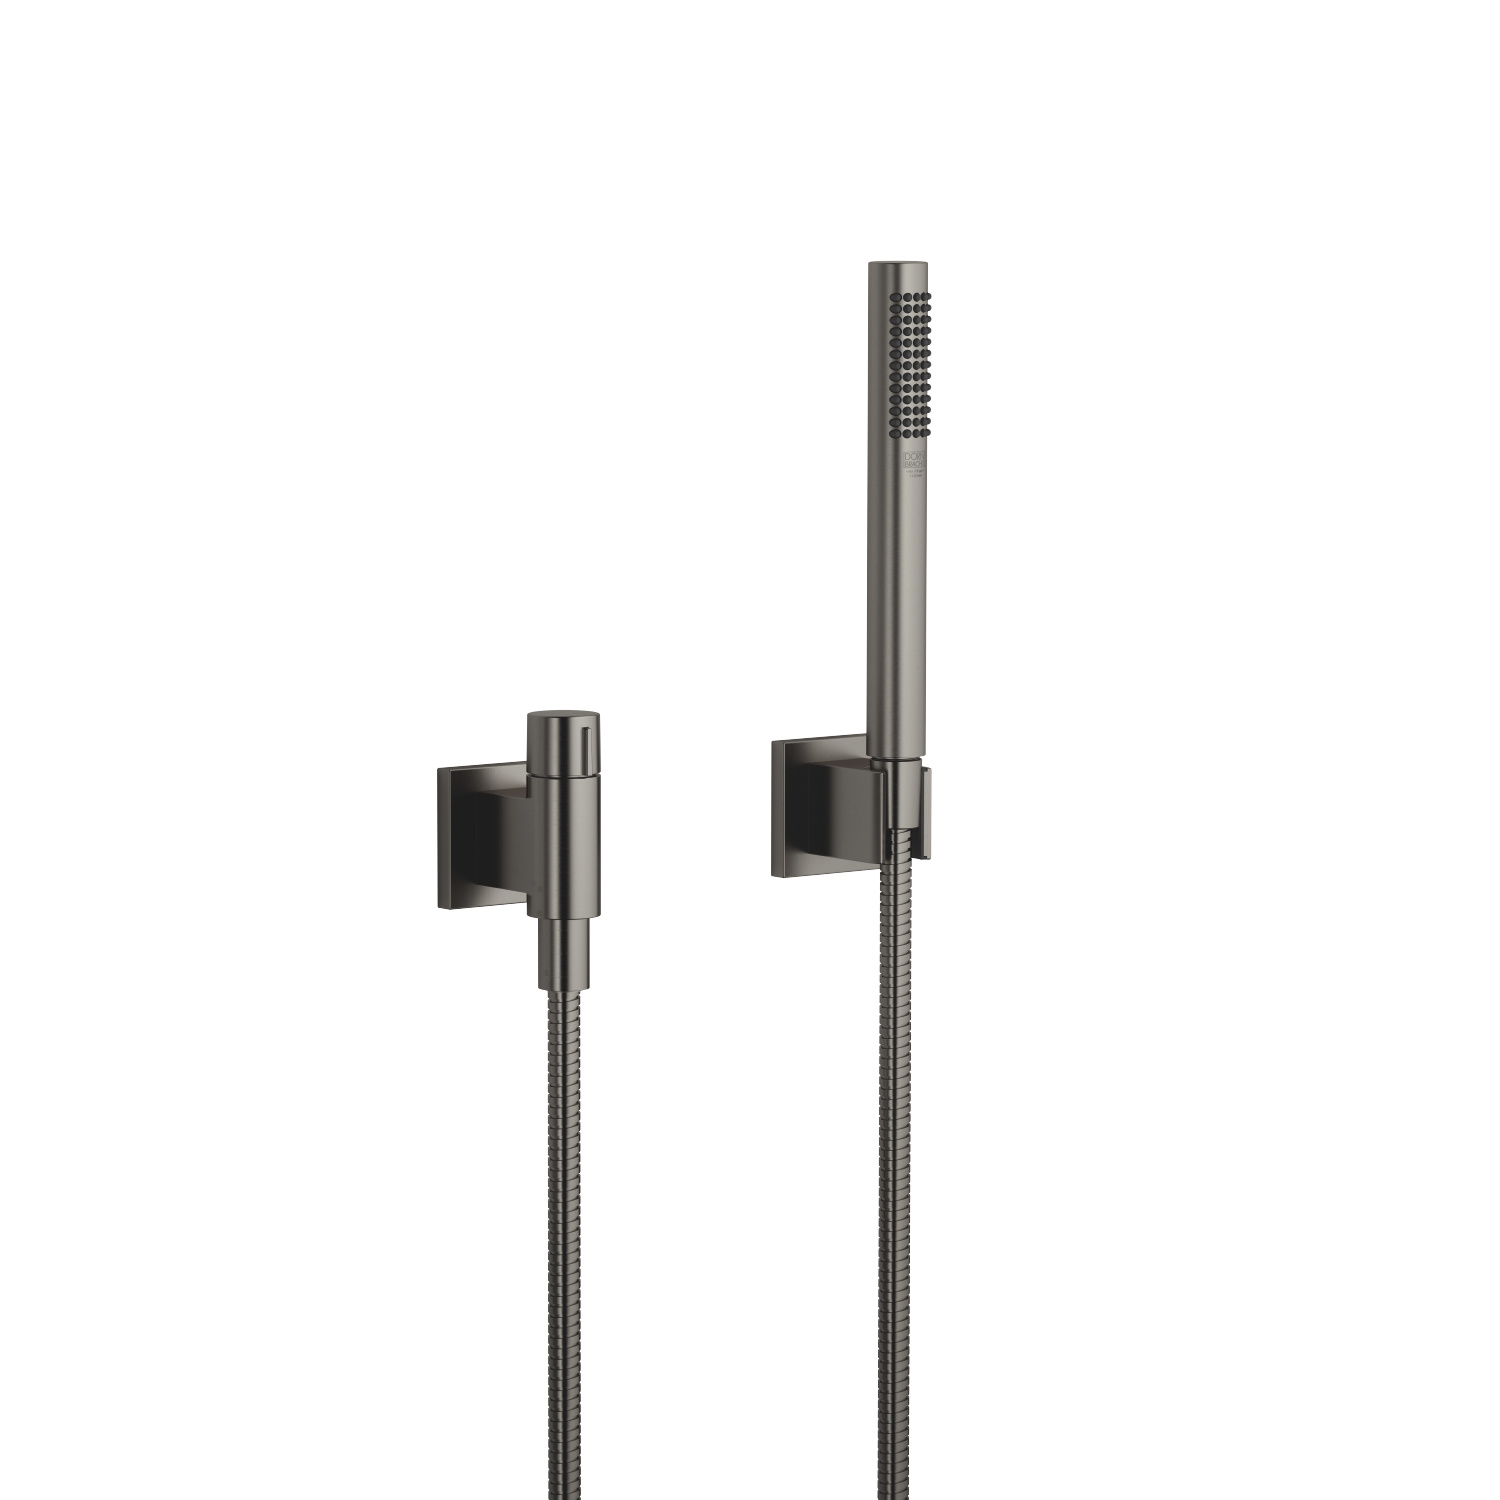 Hand shower set with individual flanges with volume control - Dark Platinum matte